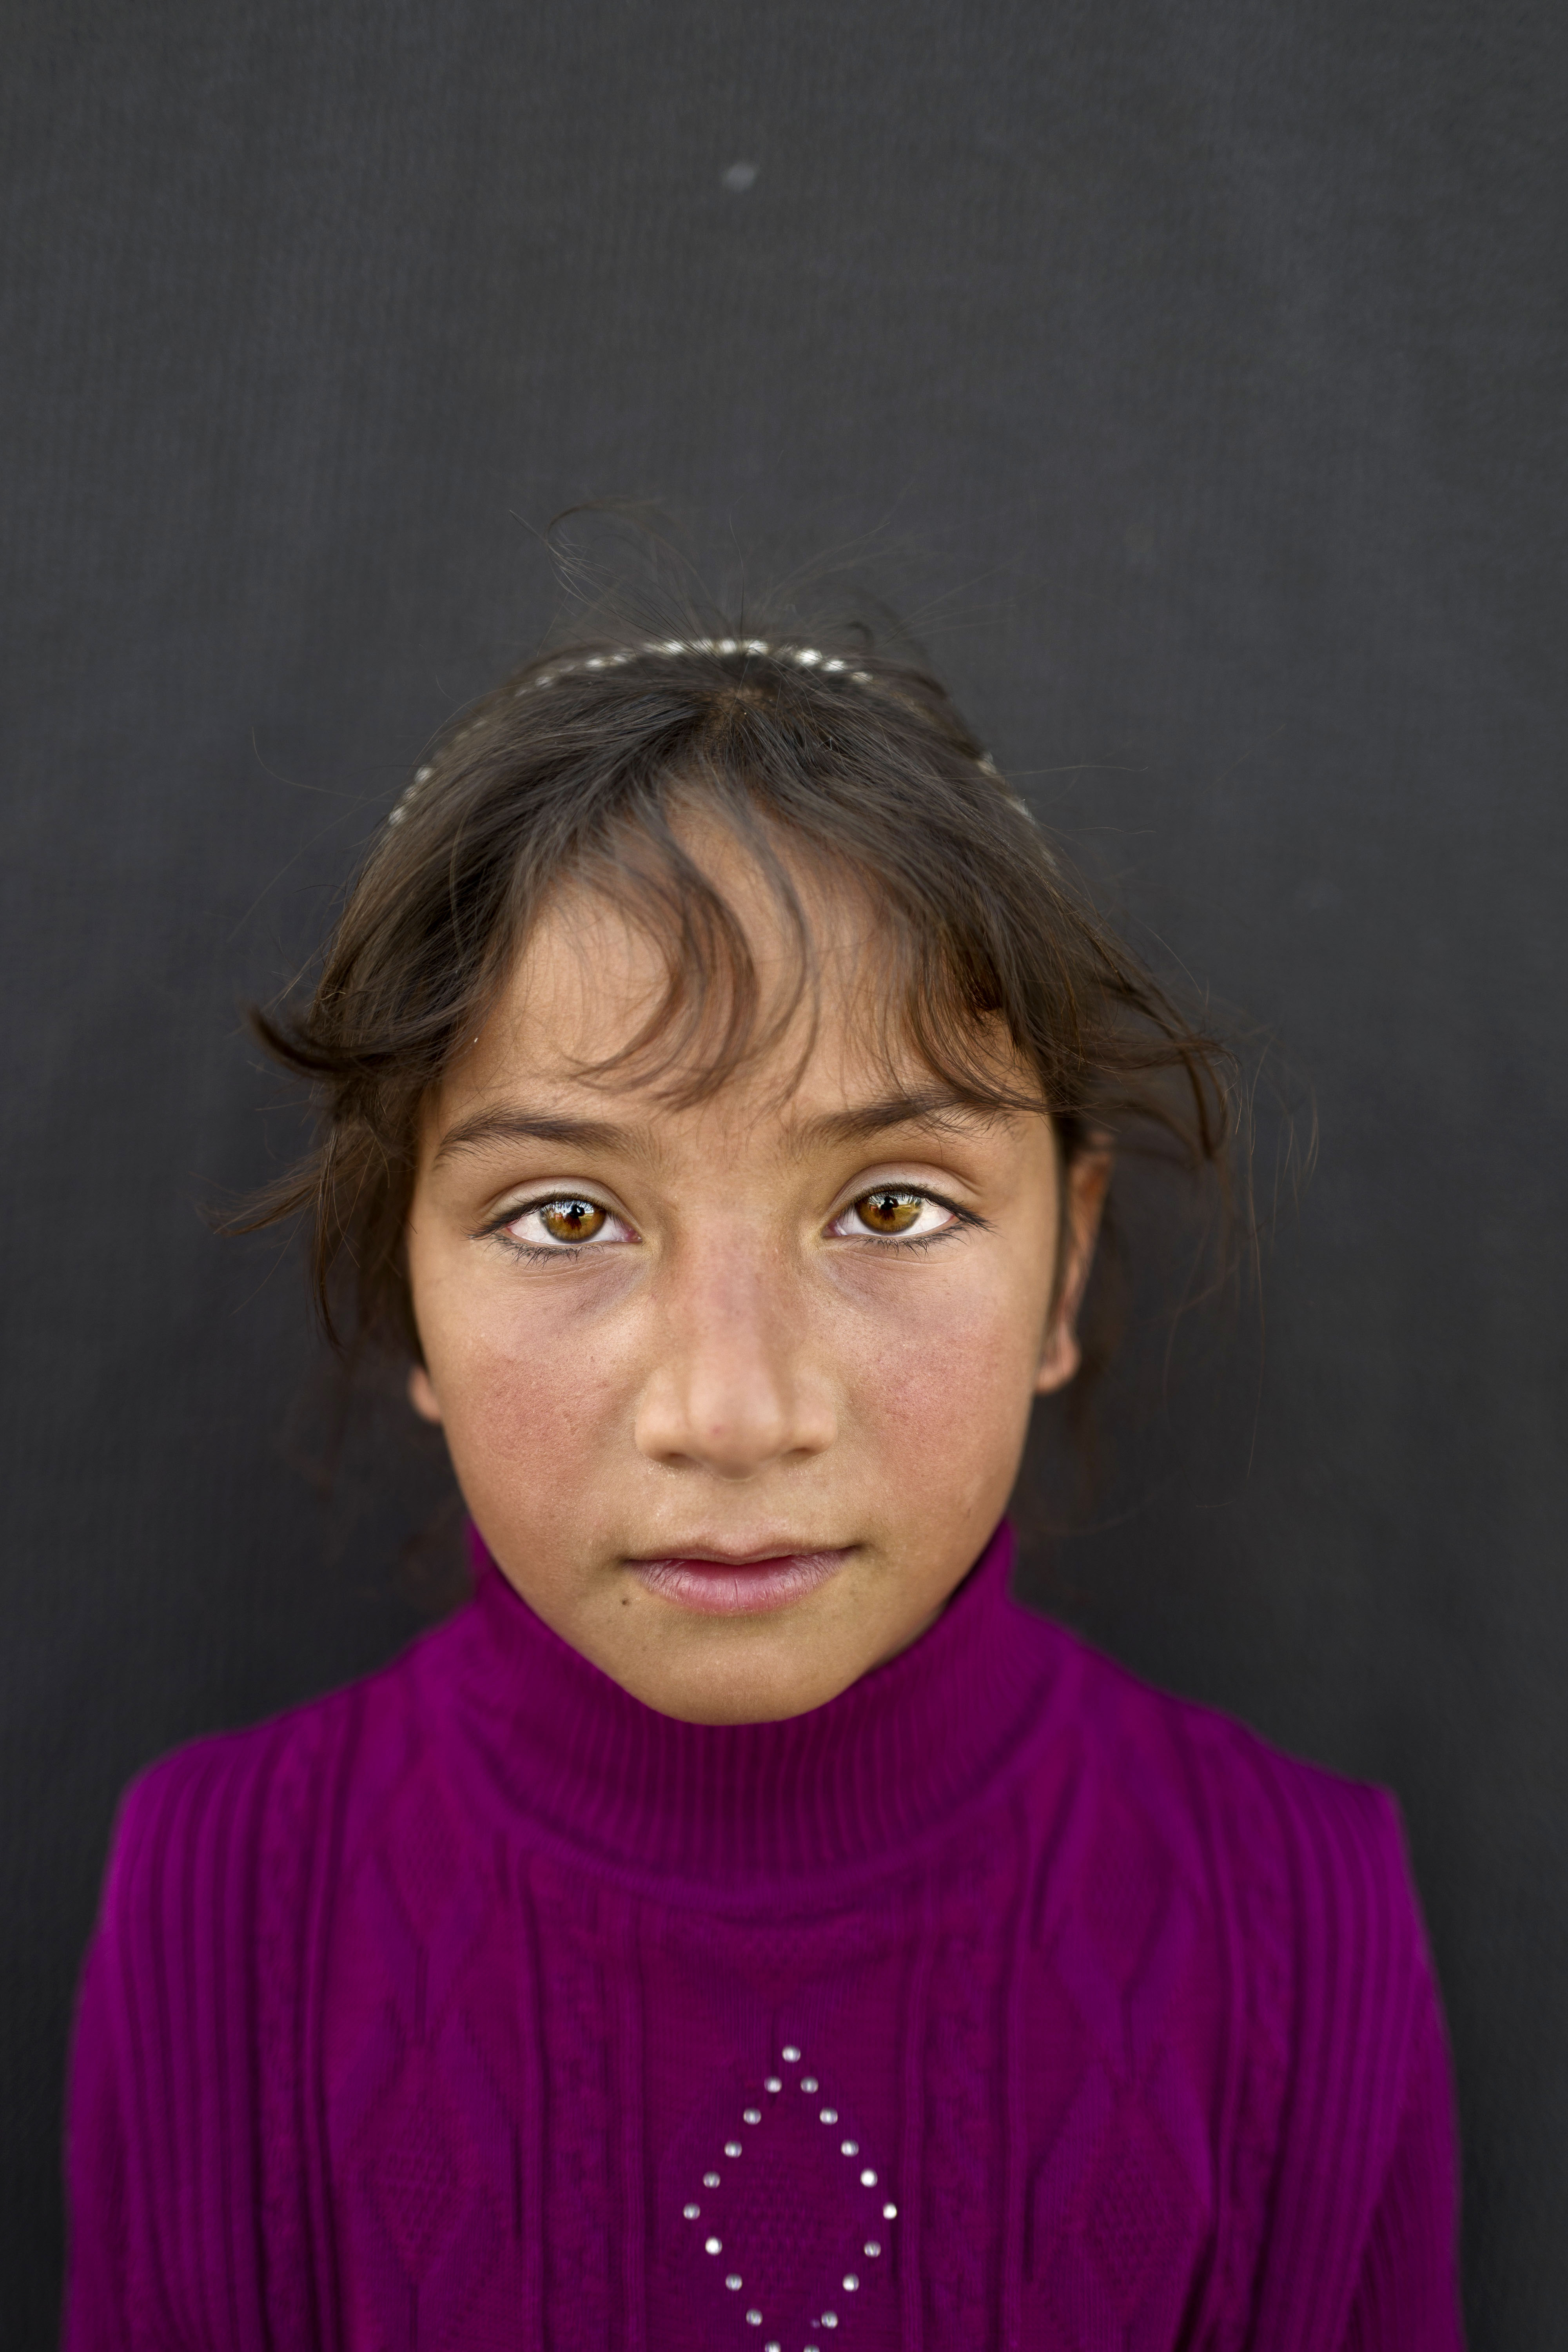 """<strong>Mariam Aloush</strong>, 8, from Homs. """"I remember our home in Syria and my school there. I just want to go back,"""" says Aloush."""